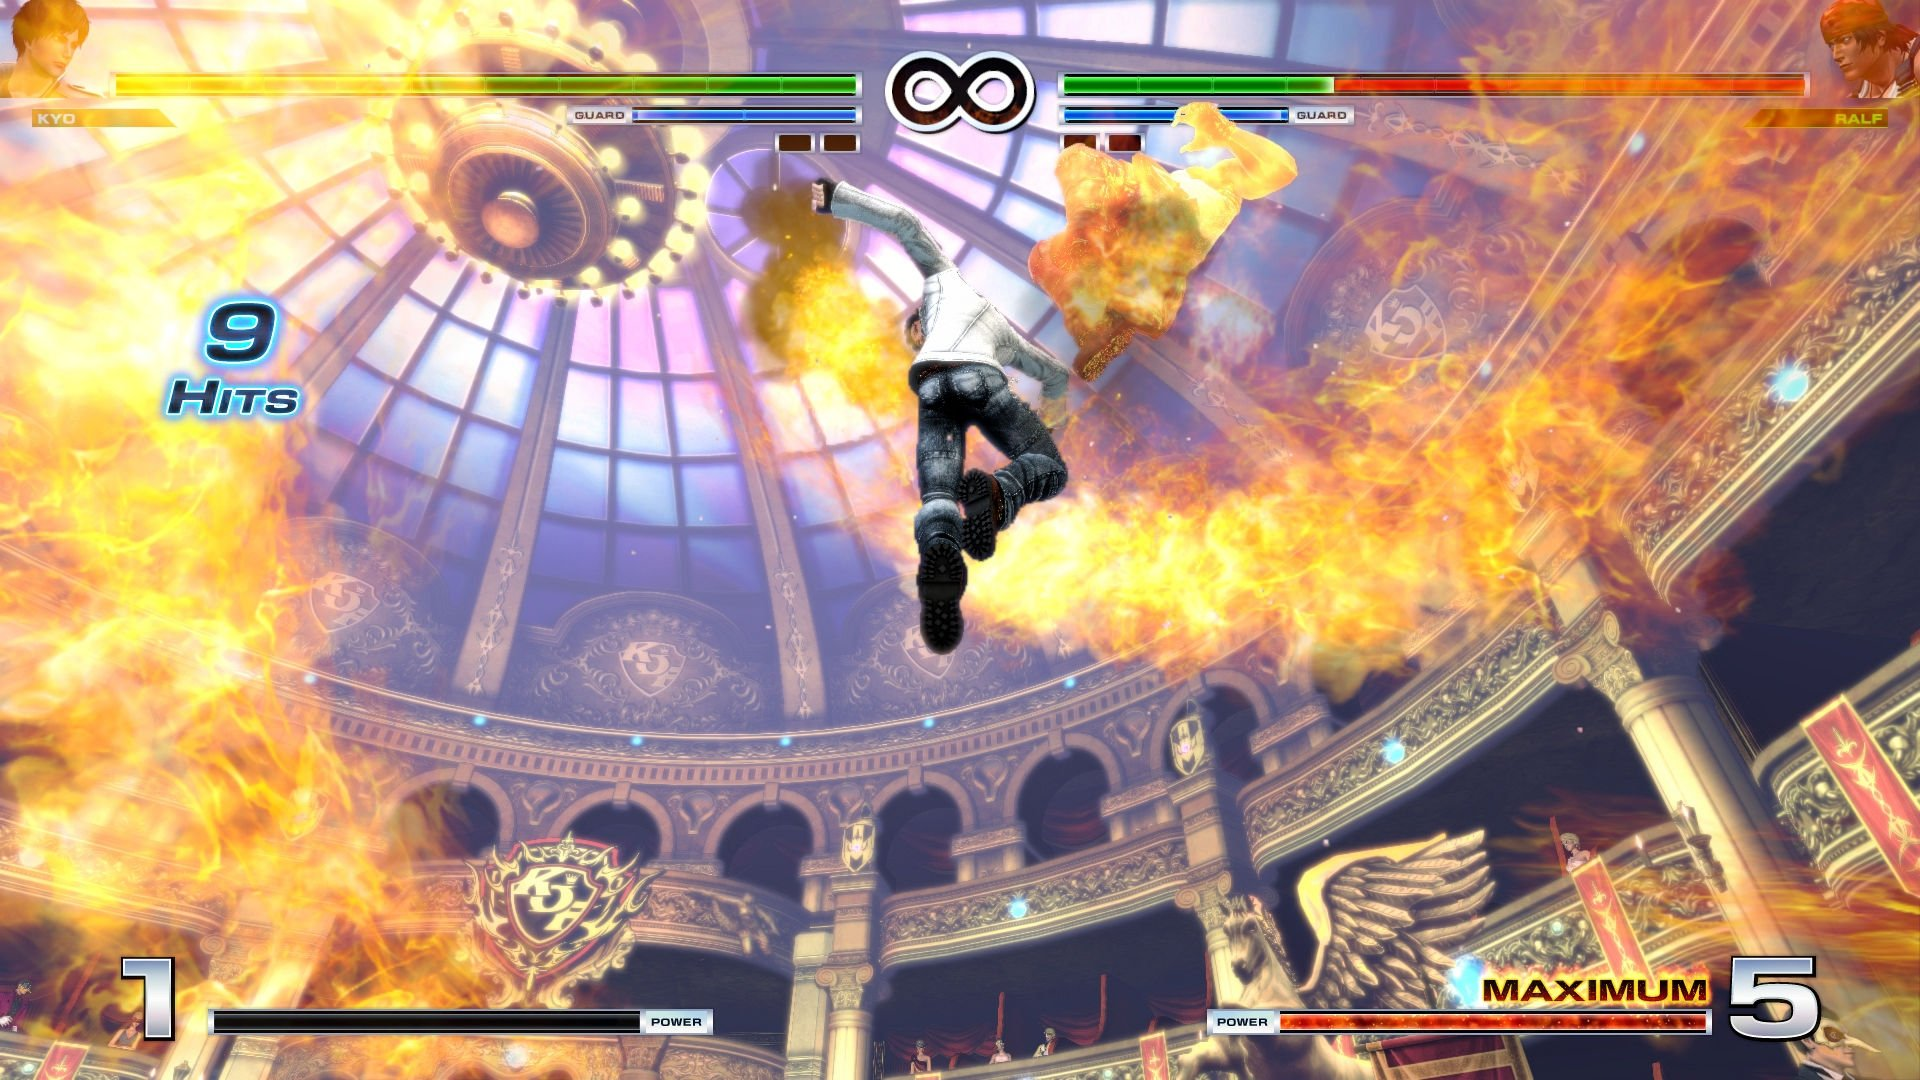 king_of_fighters_xiv-3371171.jpg